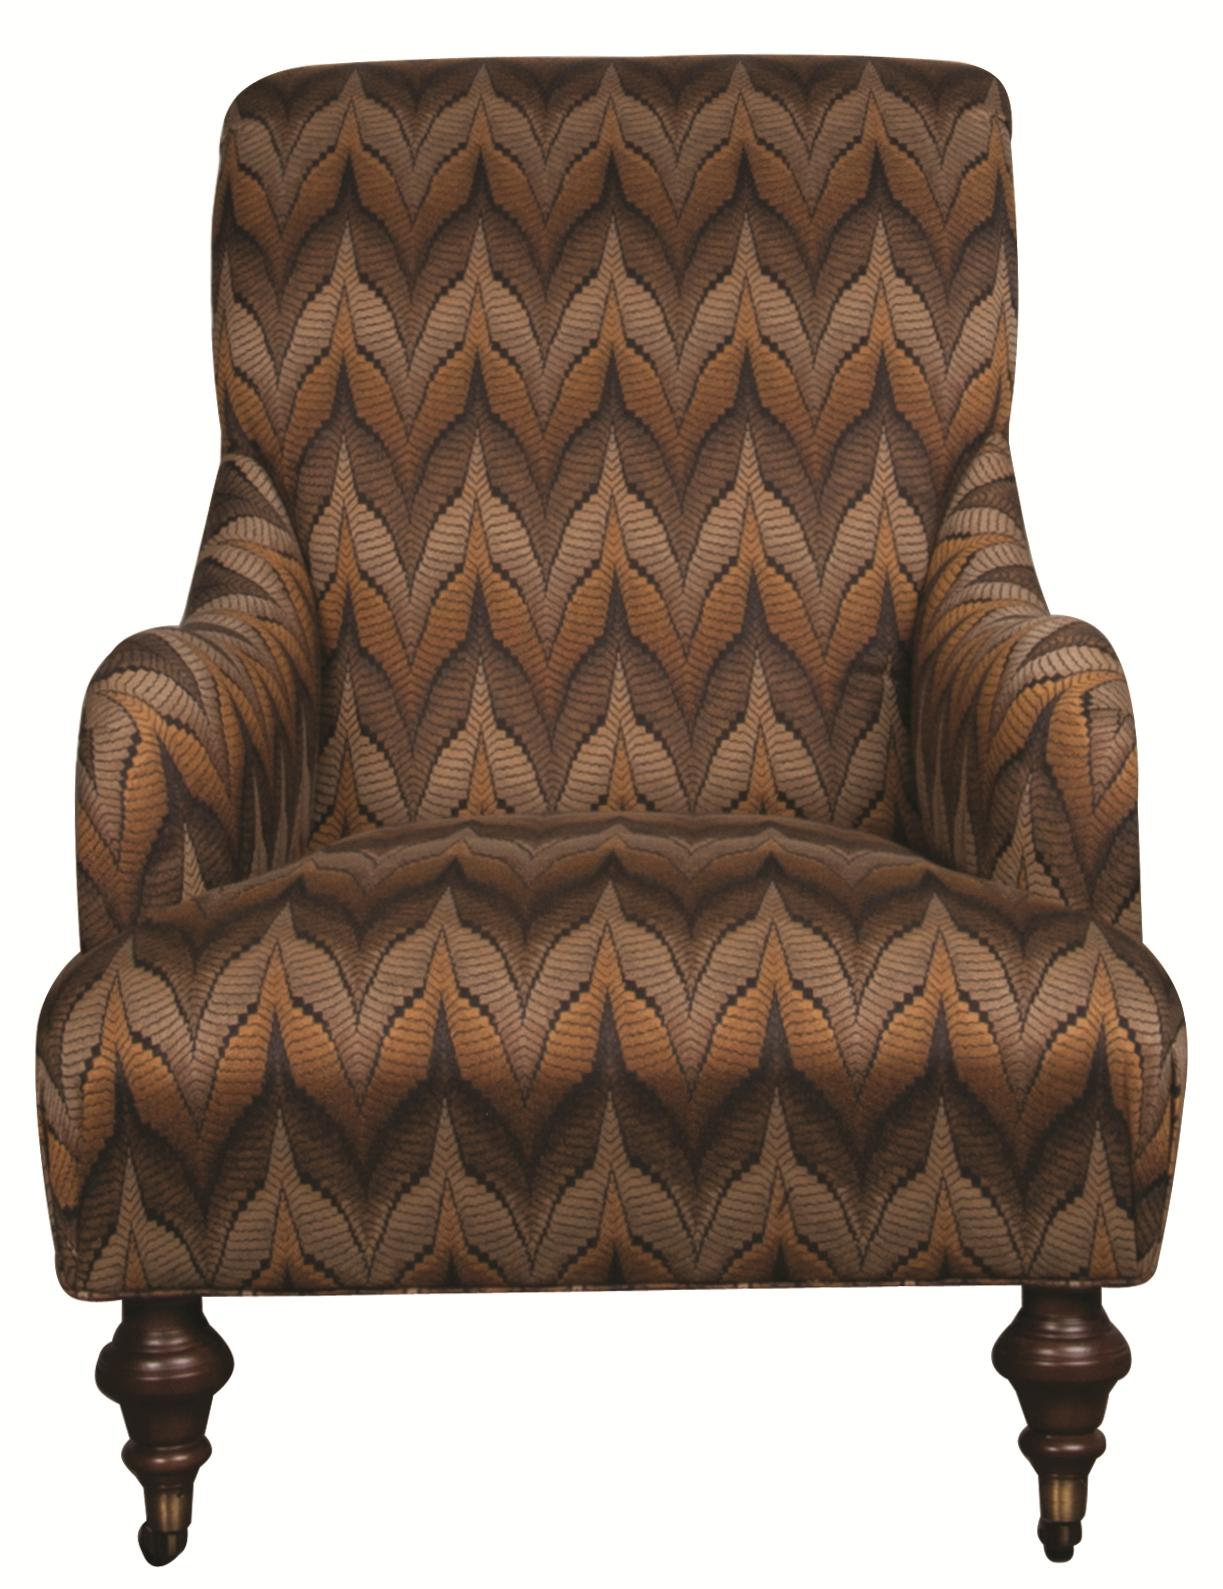 Morris Home Furnishings Jaqueline Jaqueline Accent Chair - Item Number: 110278860